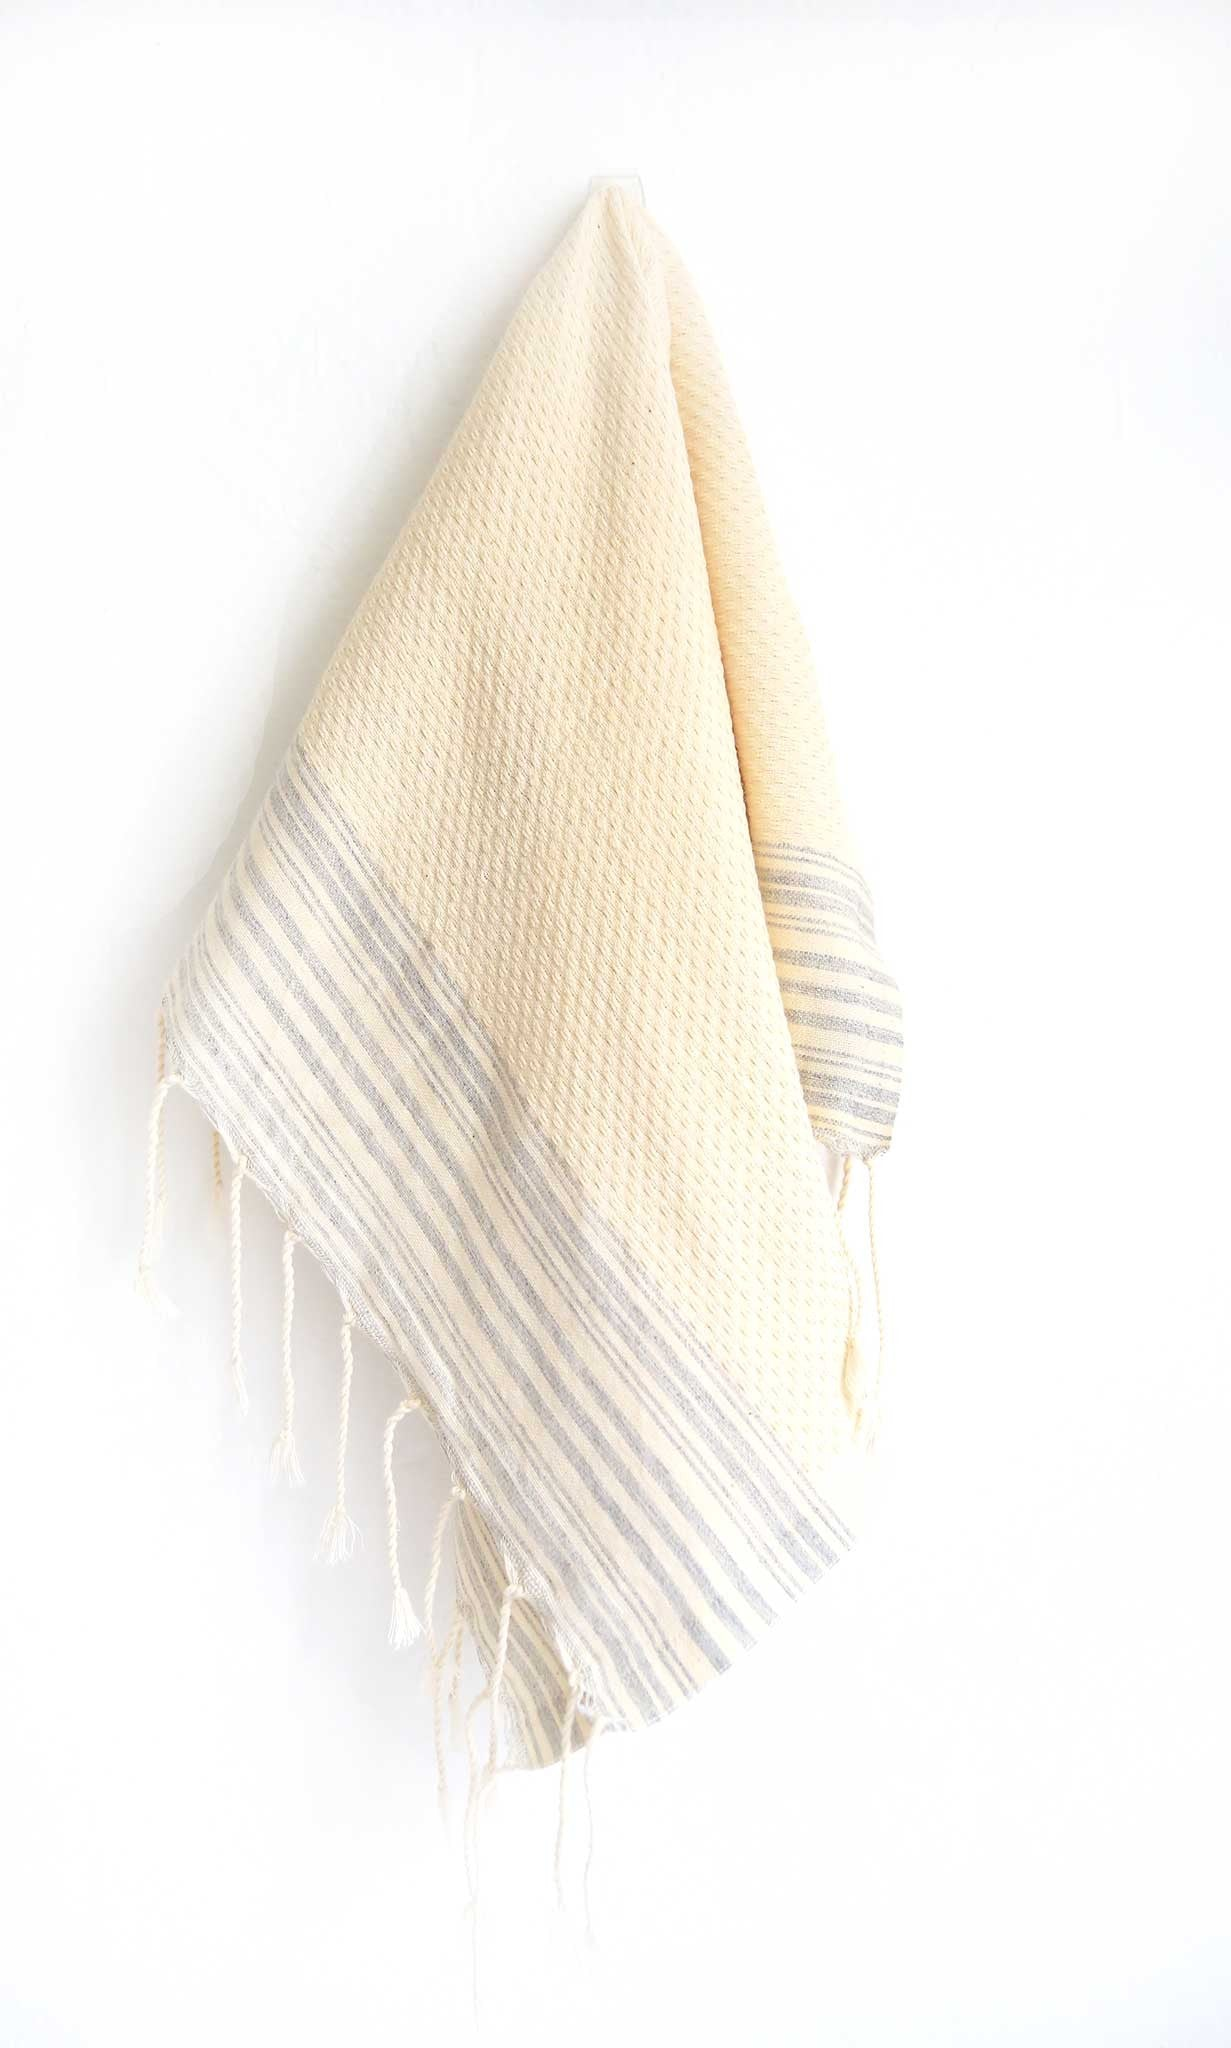 Guest Towel Positive Negative Stripes - Off White/Pearl Grey